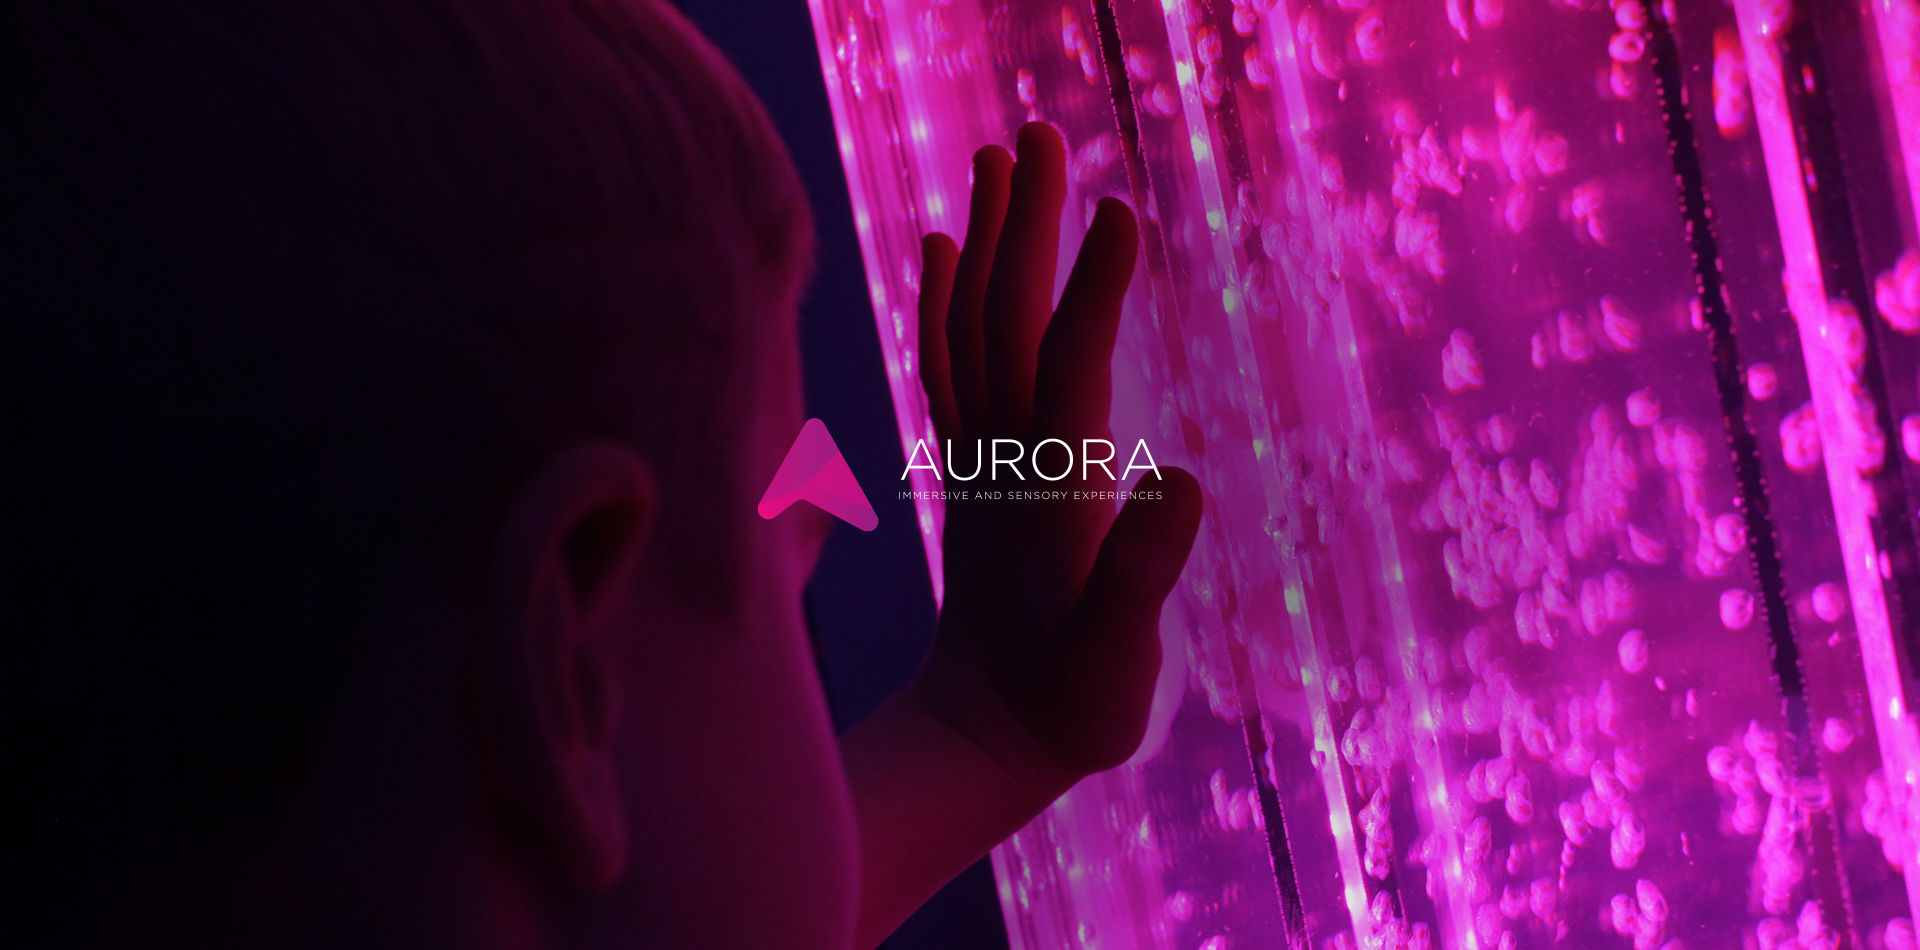 Aurora - Sensory rooms and immersive spaces